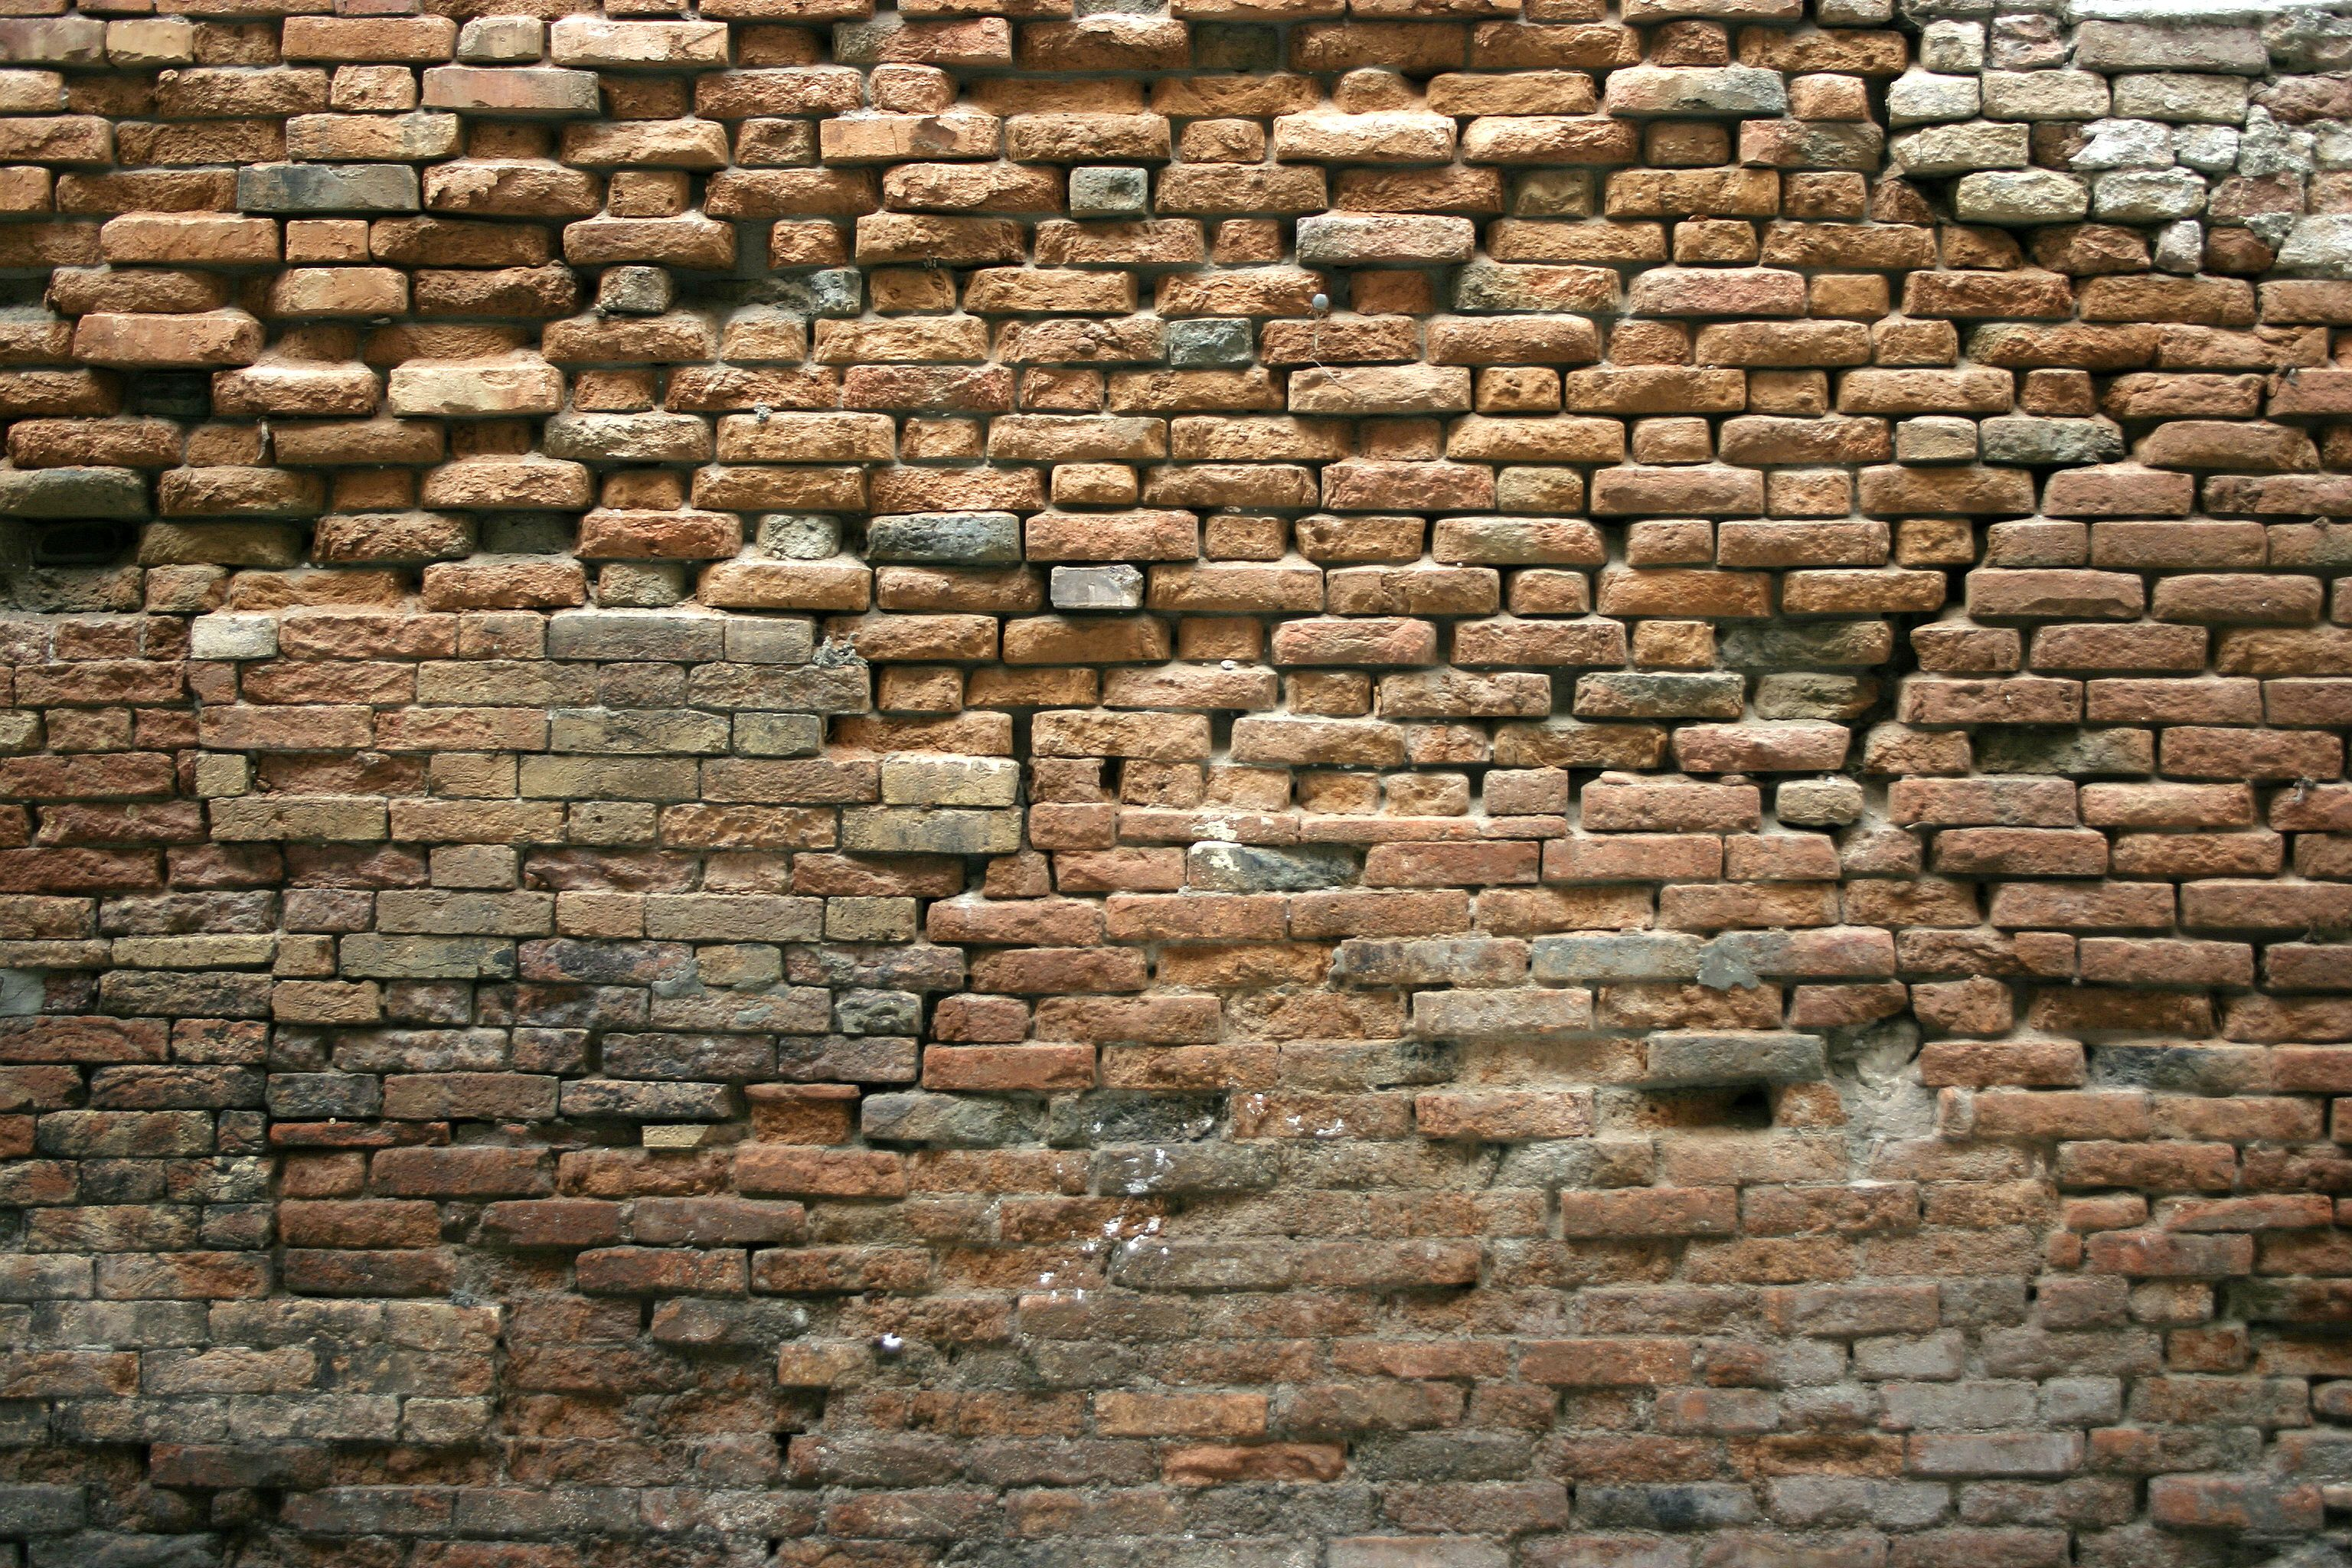 Pared de ladrillo viejo buscar con google bricks - Pared de ladrillo ...